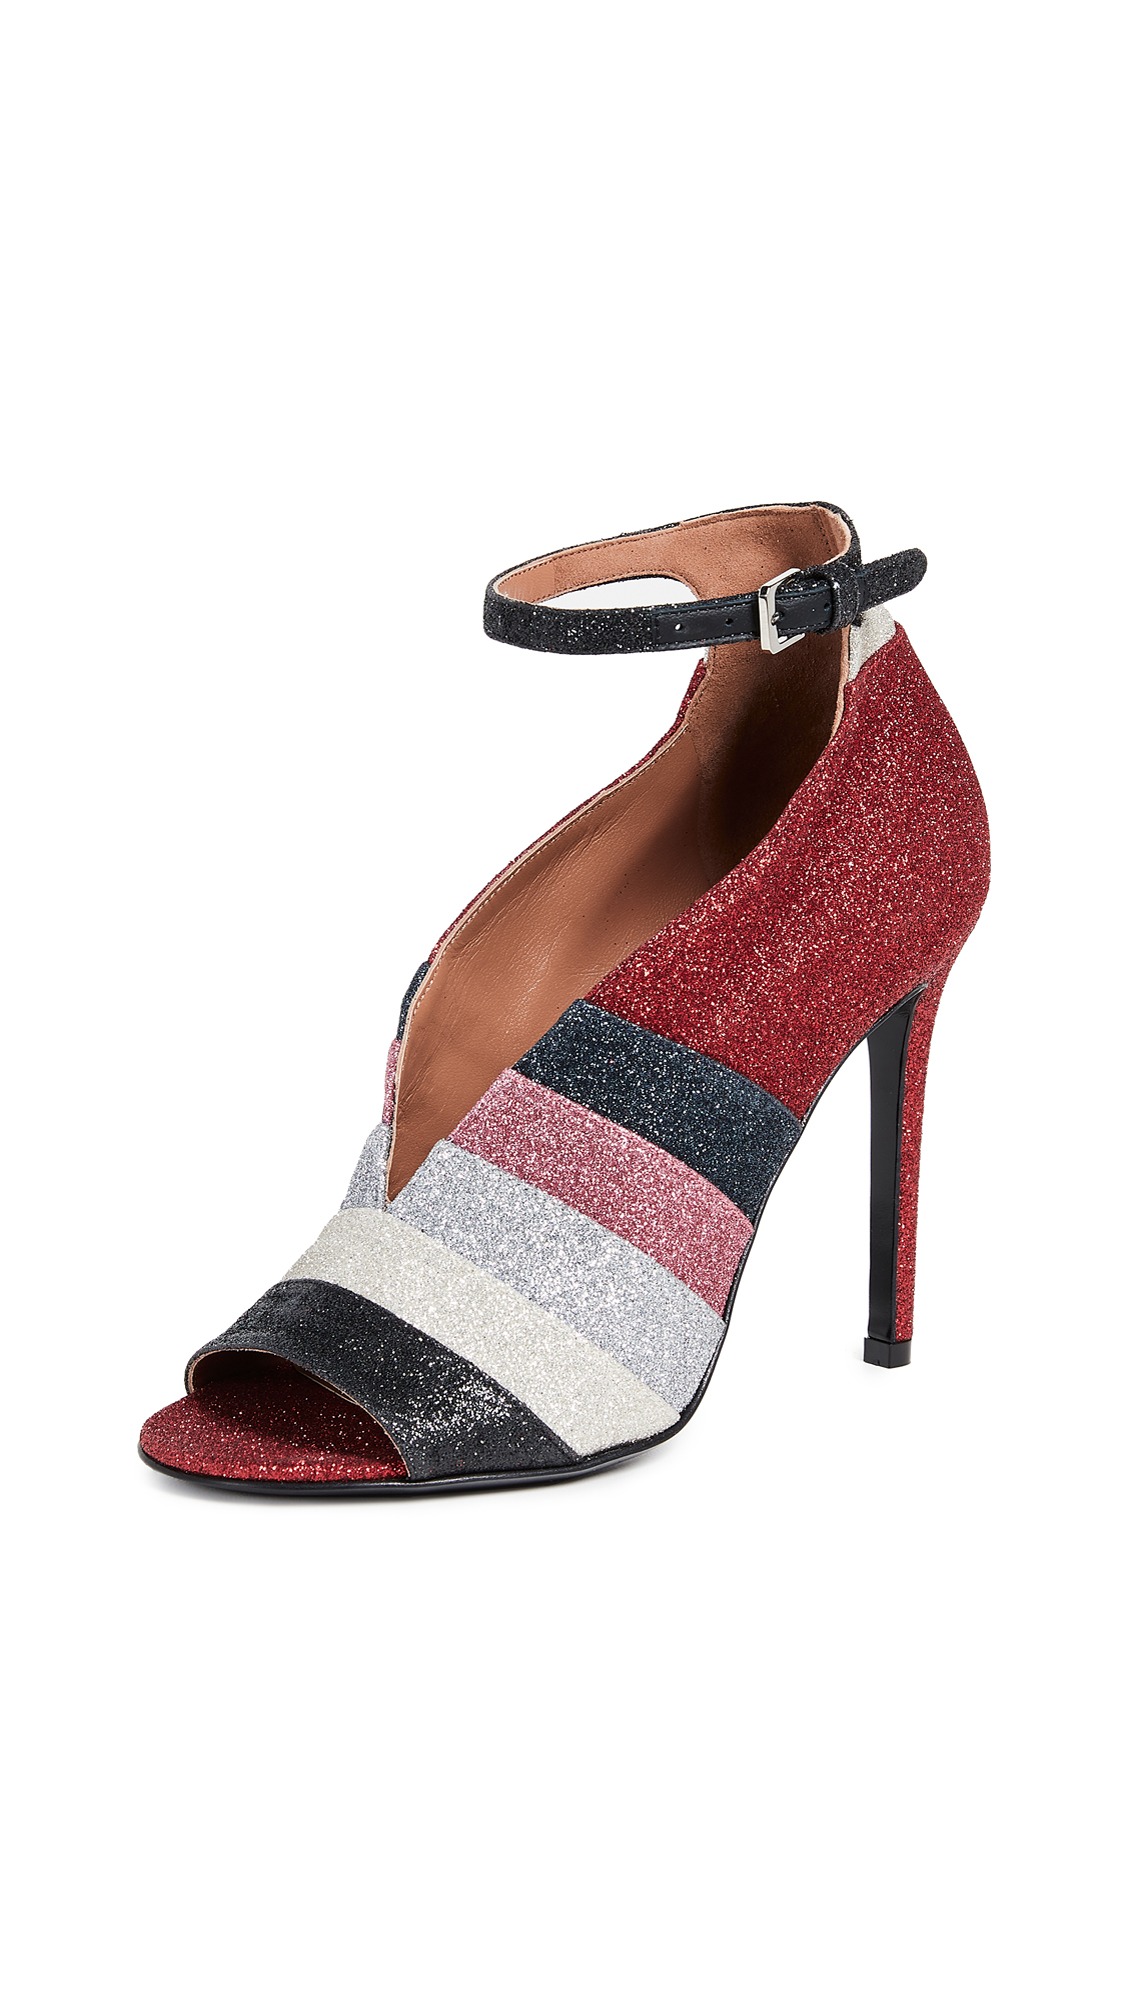 Laurence Dacade Sianni Pumps